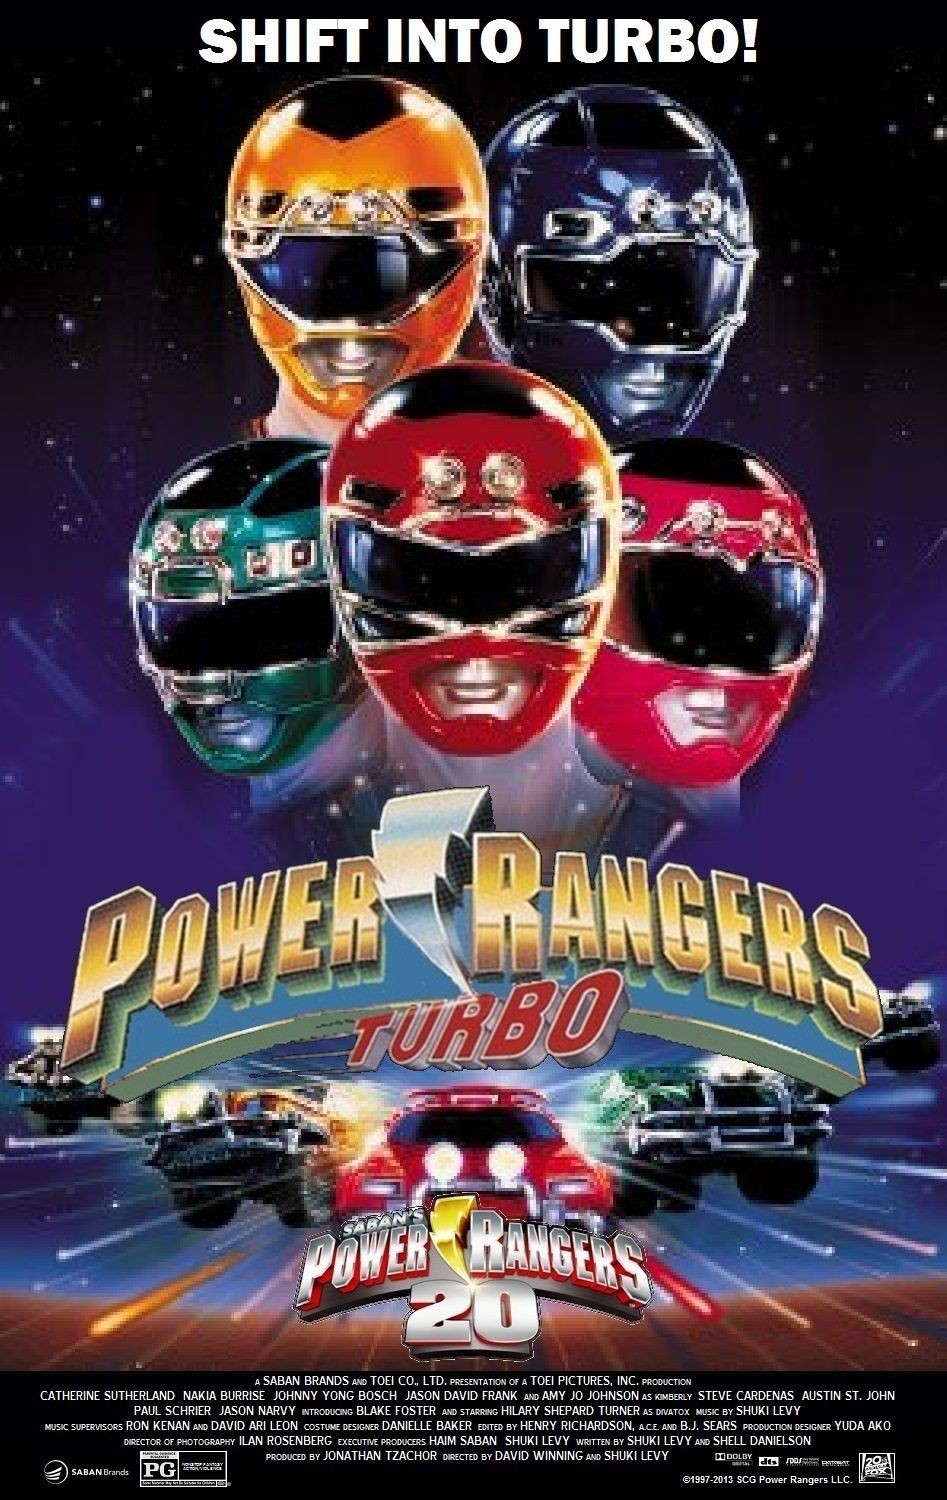 pin by my morphin time on turbo the movie pinterest power rangers movie. Black Bedroom Furniture Sets. Home Design Ideas